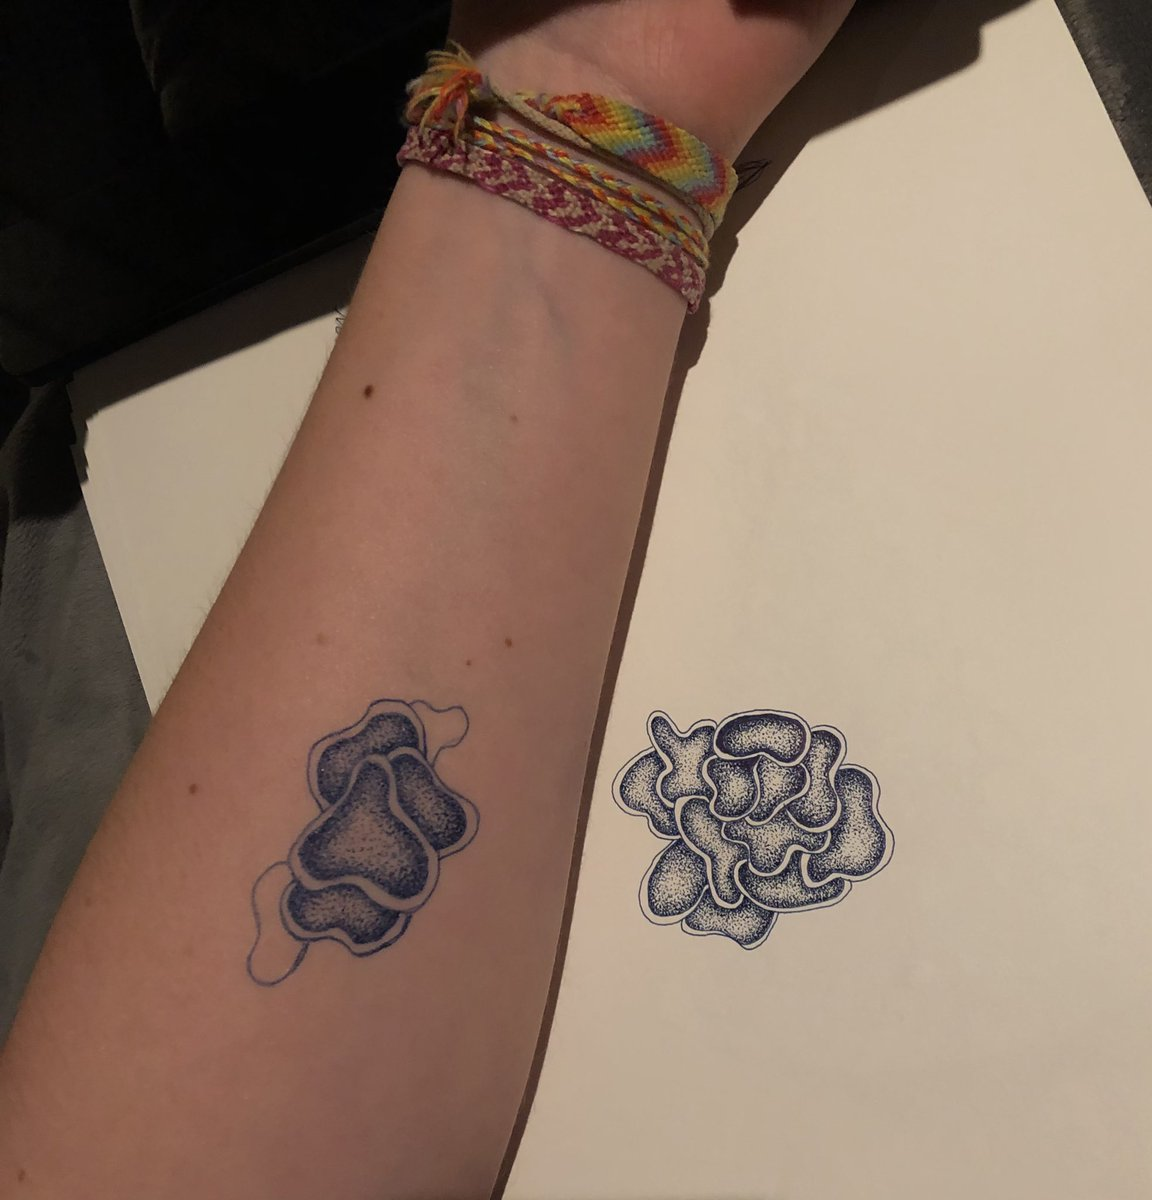 Sophie's arm is next to a doodle on a large sheet of paper. The doodle on both the paper in their arm is many overlapping blob shapes that are shaded with dots to make them appear somewhat 3D. A smaller version of the design is repeated on sophie's forearm.